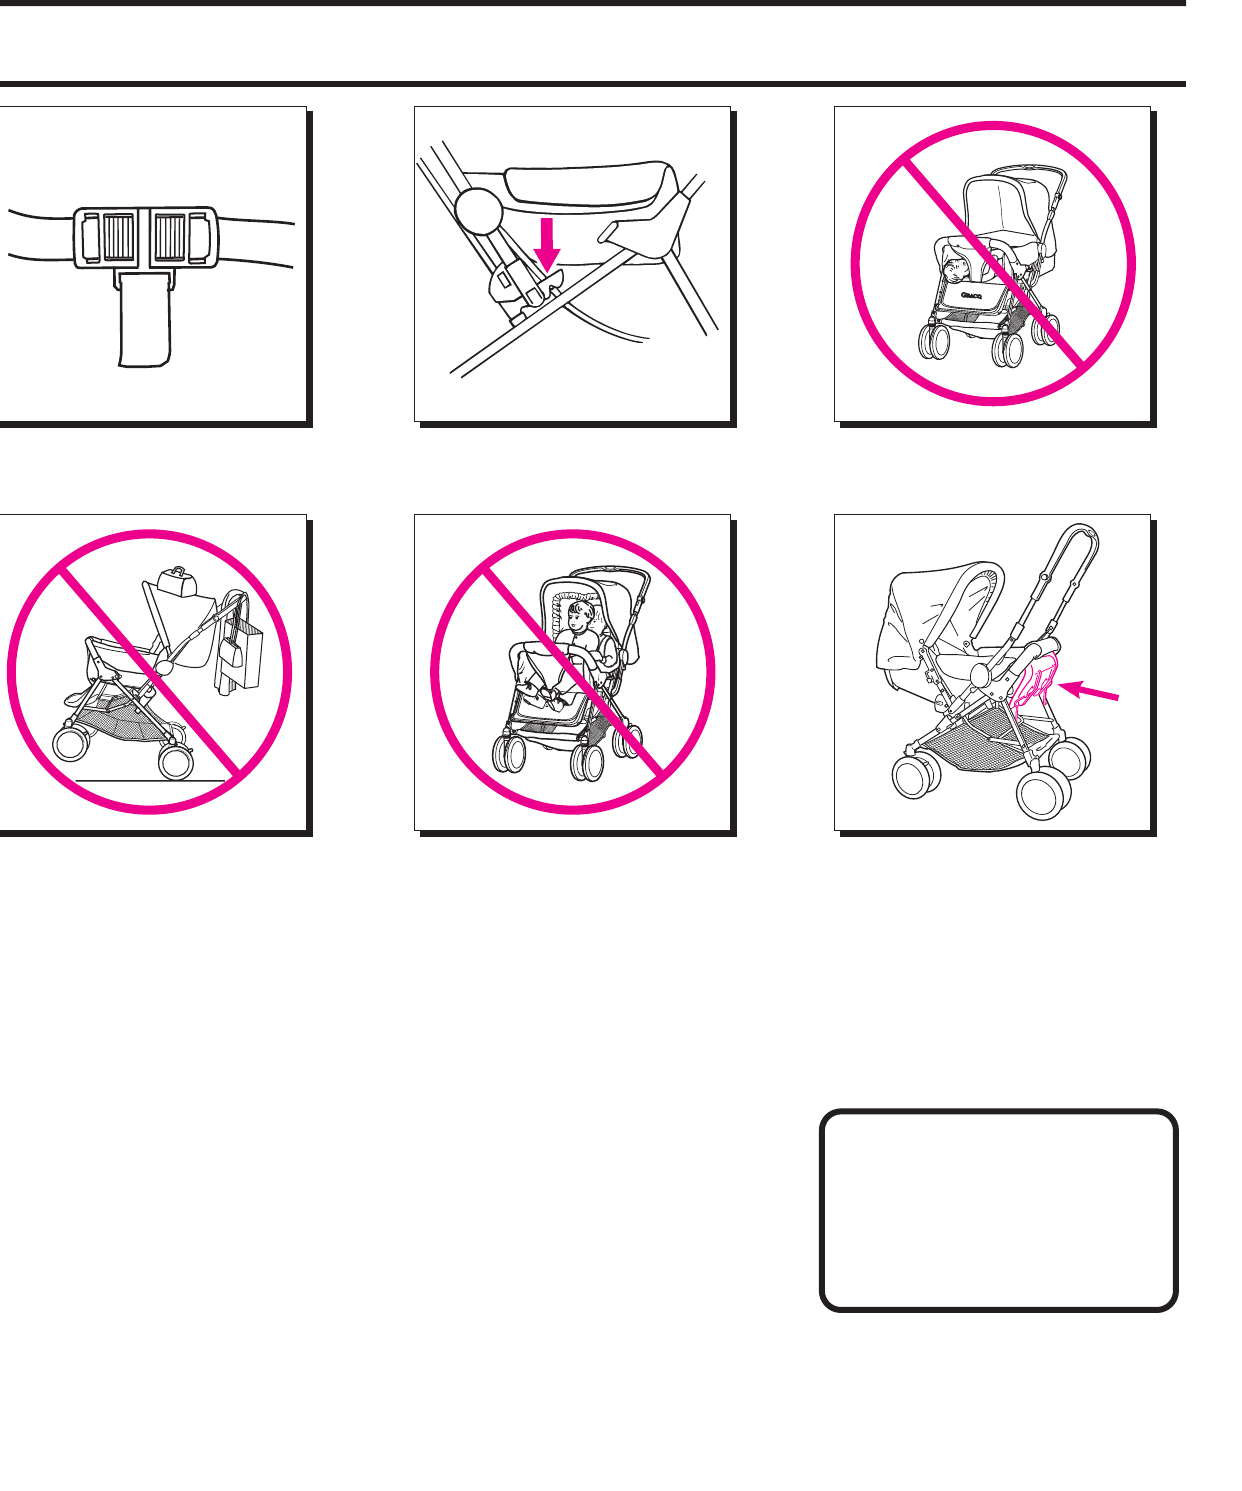 Page 2 of Graco Stroller 7600, 7700 User Guide